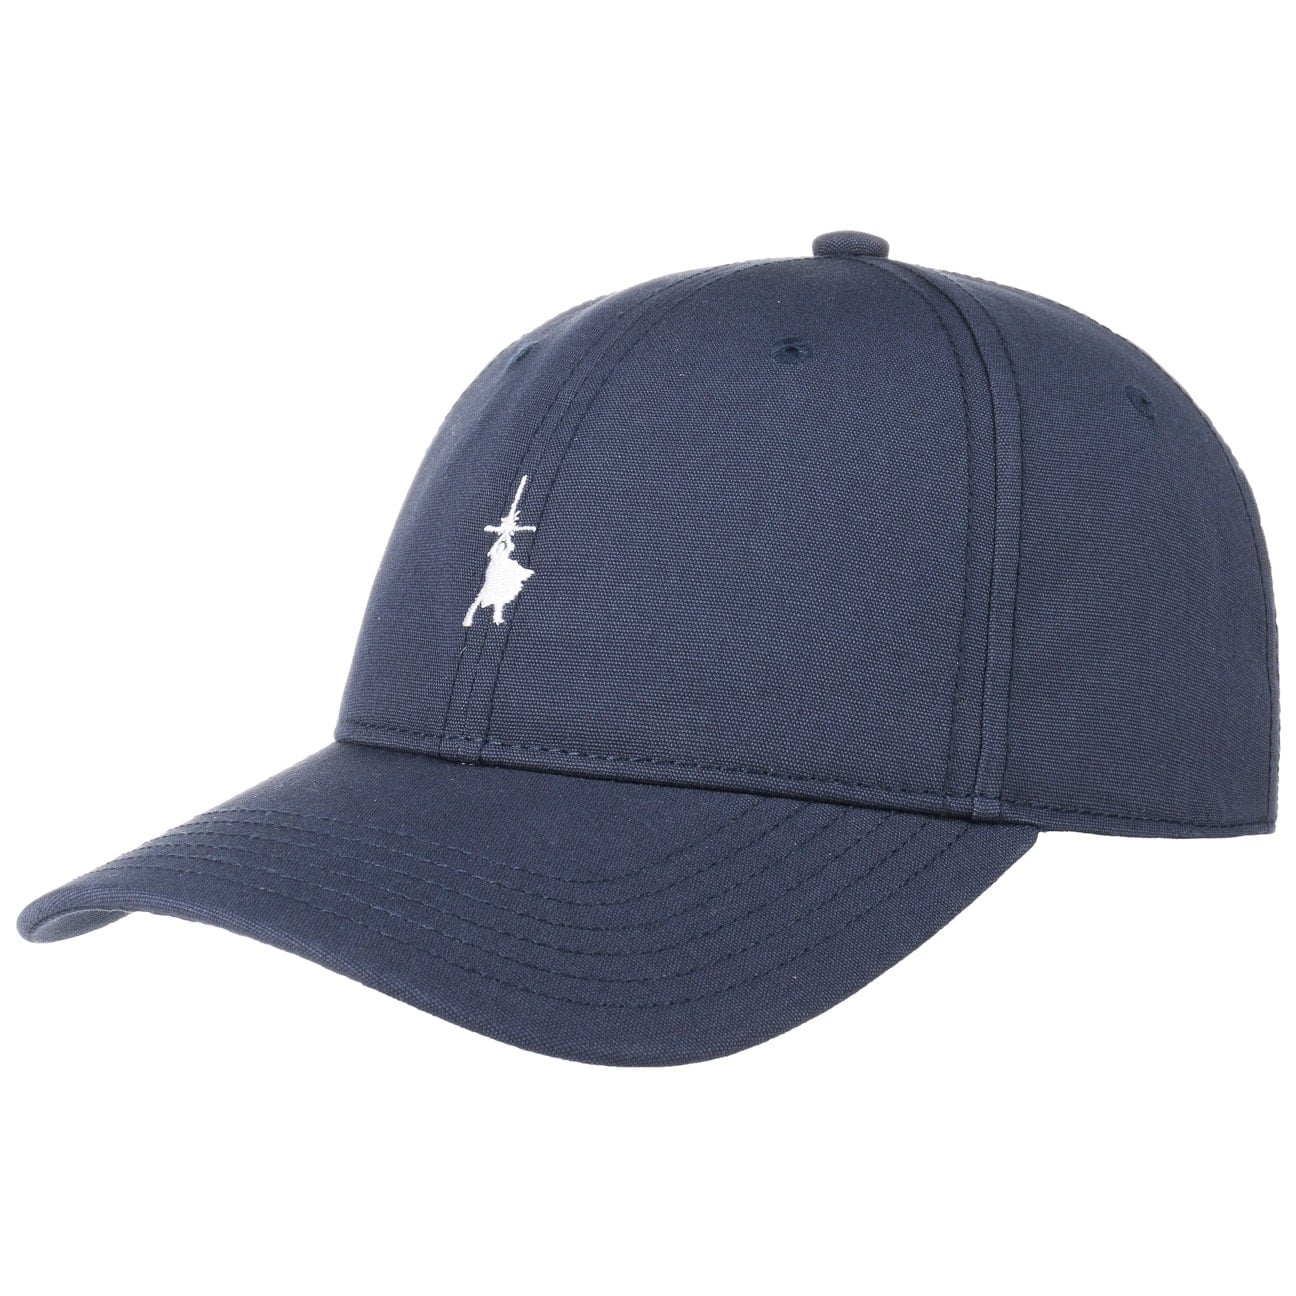 Casquette Luke Curved Brim by dedicated  baseball cap